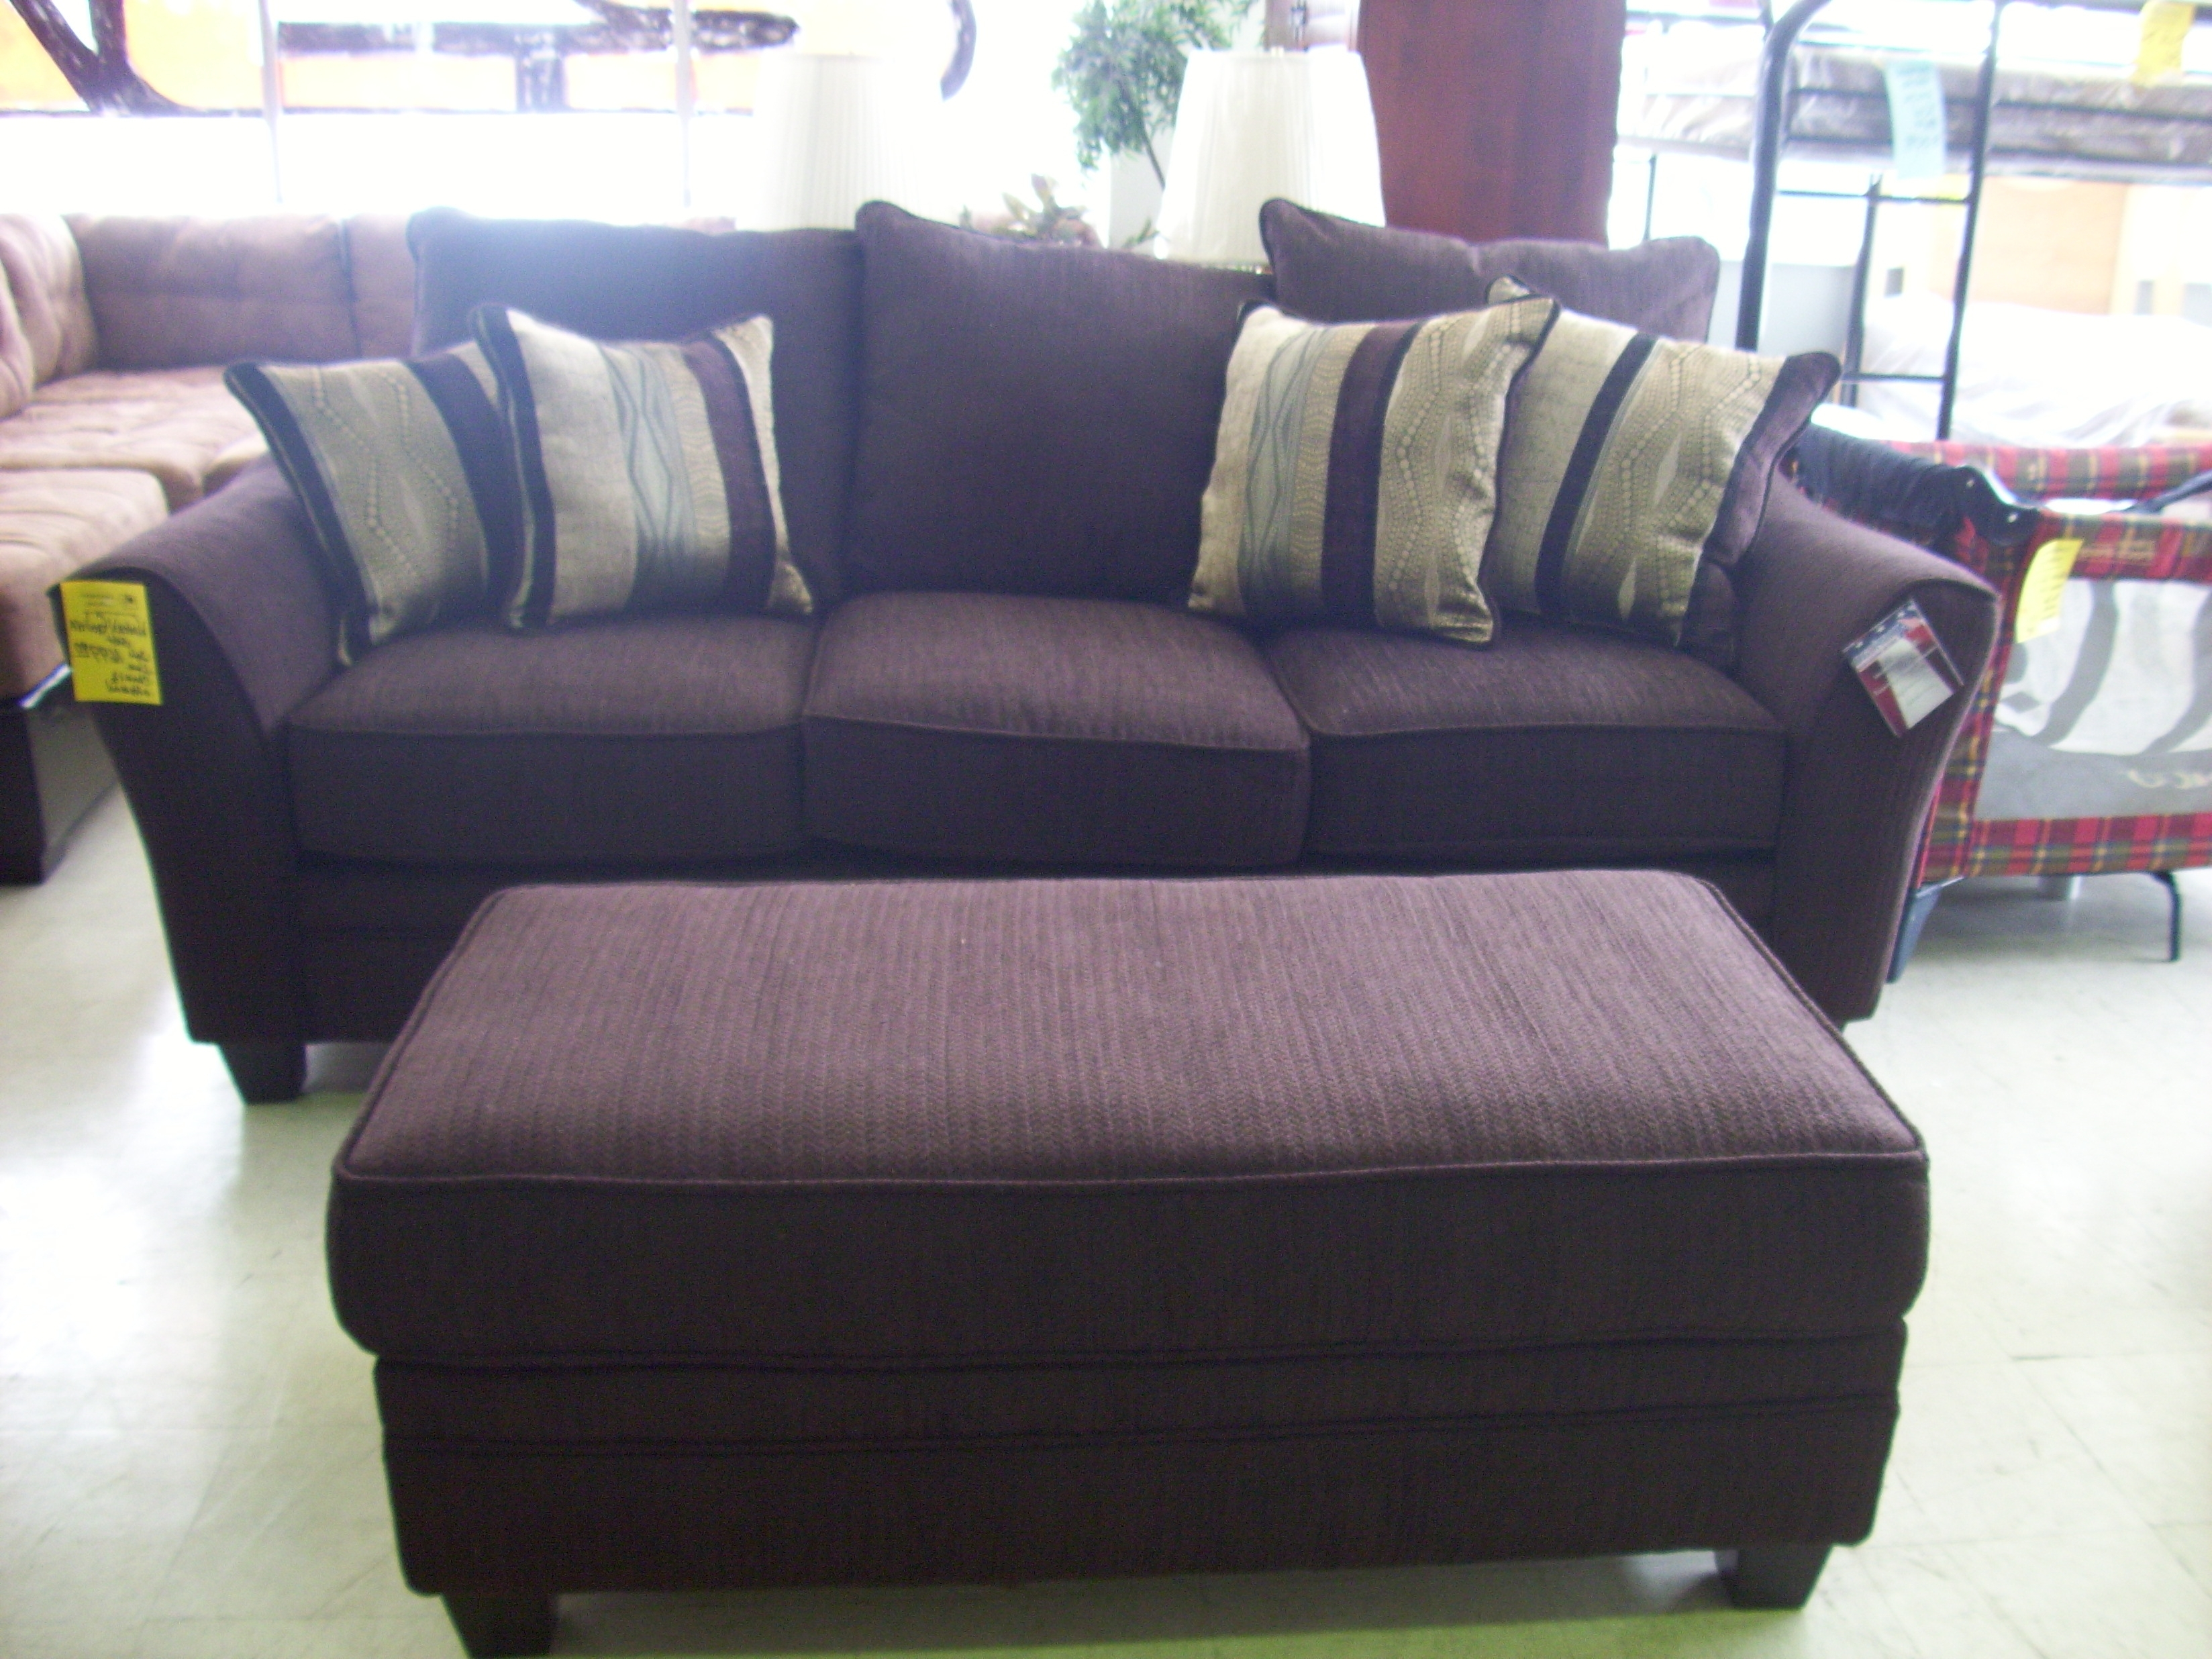 Oversized Sofa Chairs With Regard To Current Oversized Sofa – Helpformycredit (View 12 of 15)